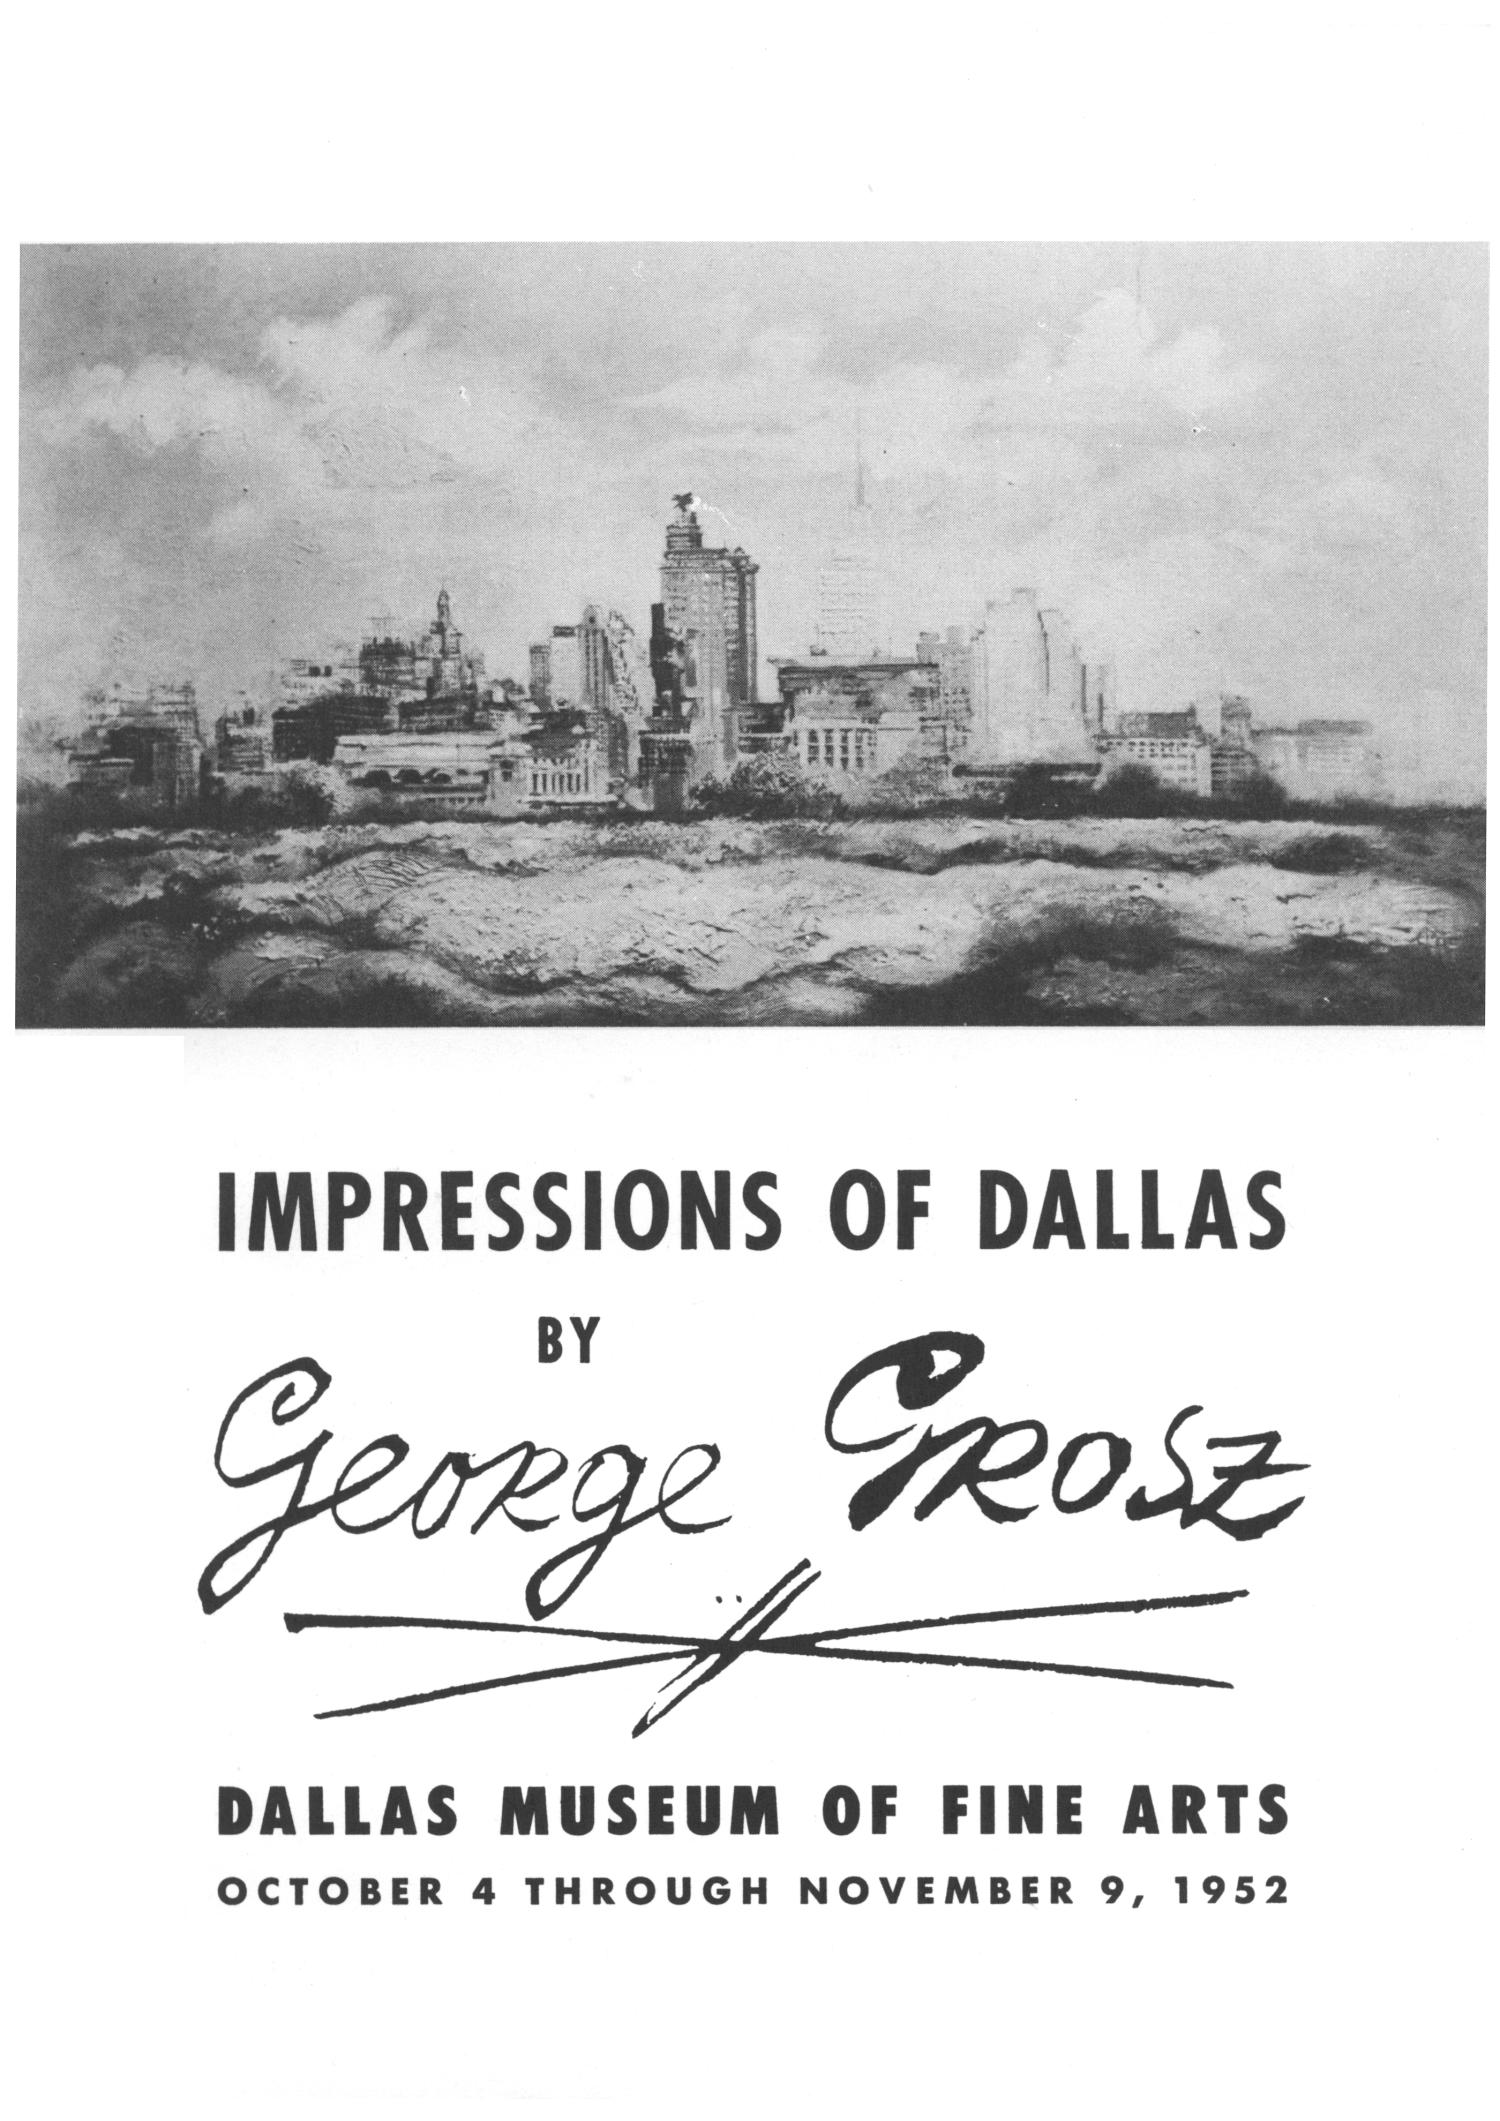 Impressions of Dallas by George Grosz                                                                                                      1